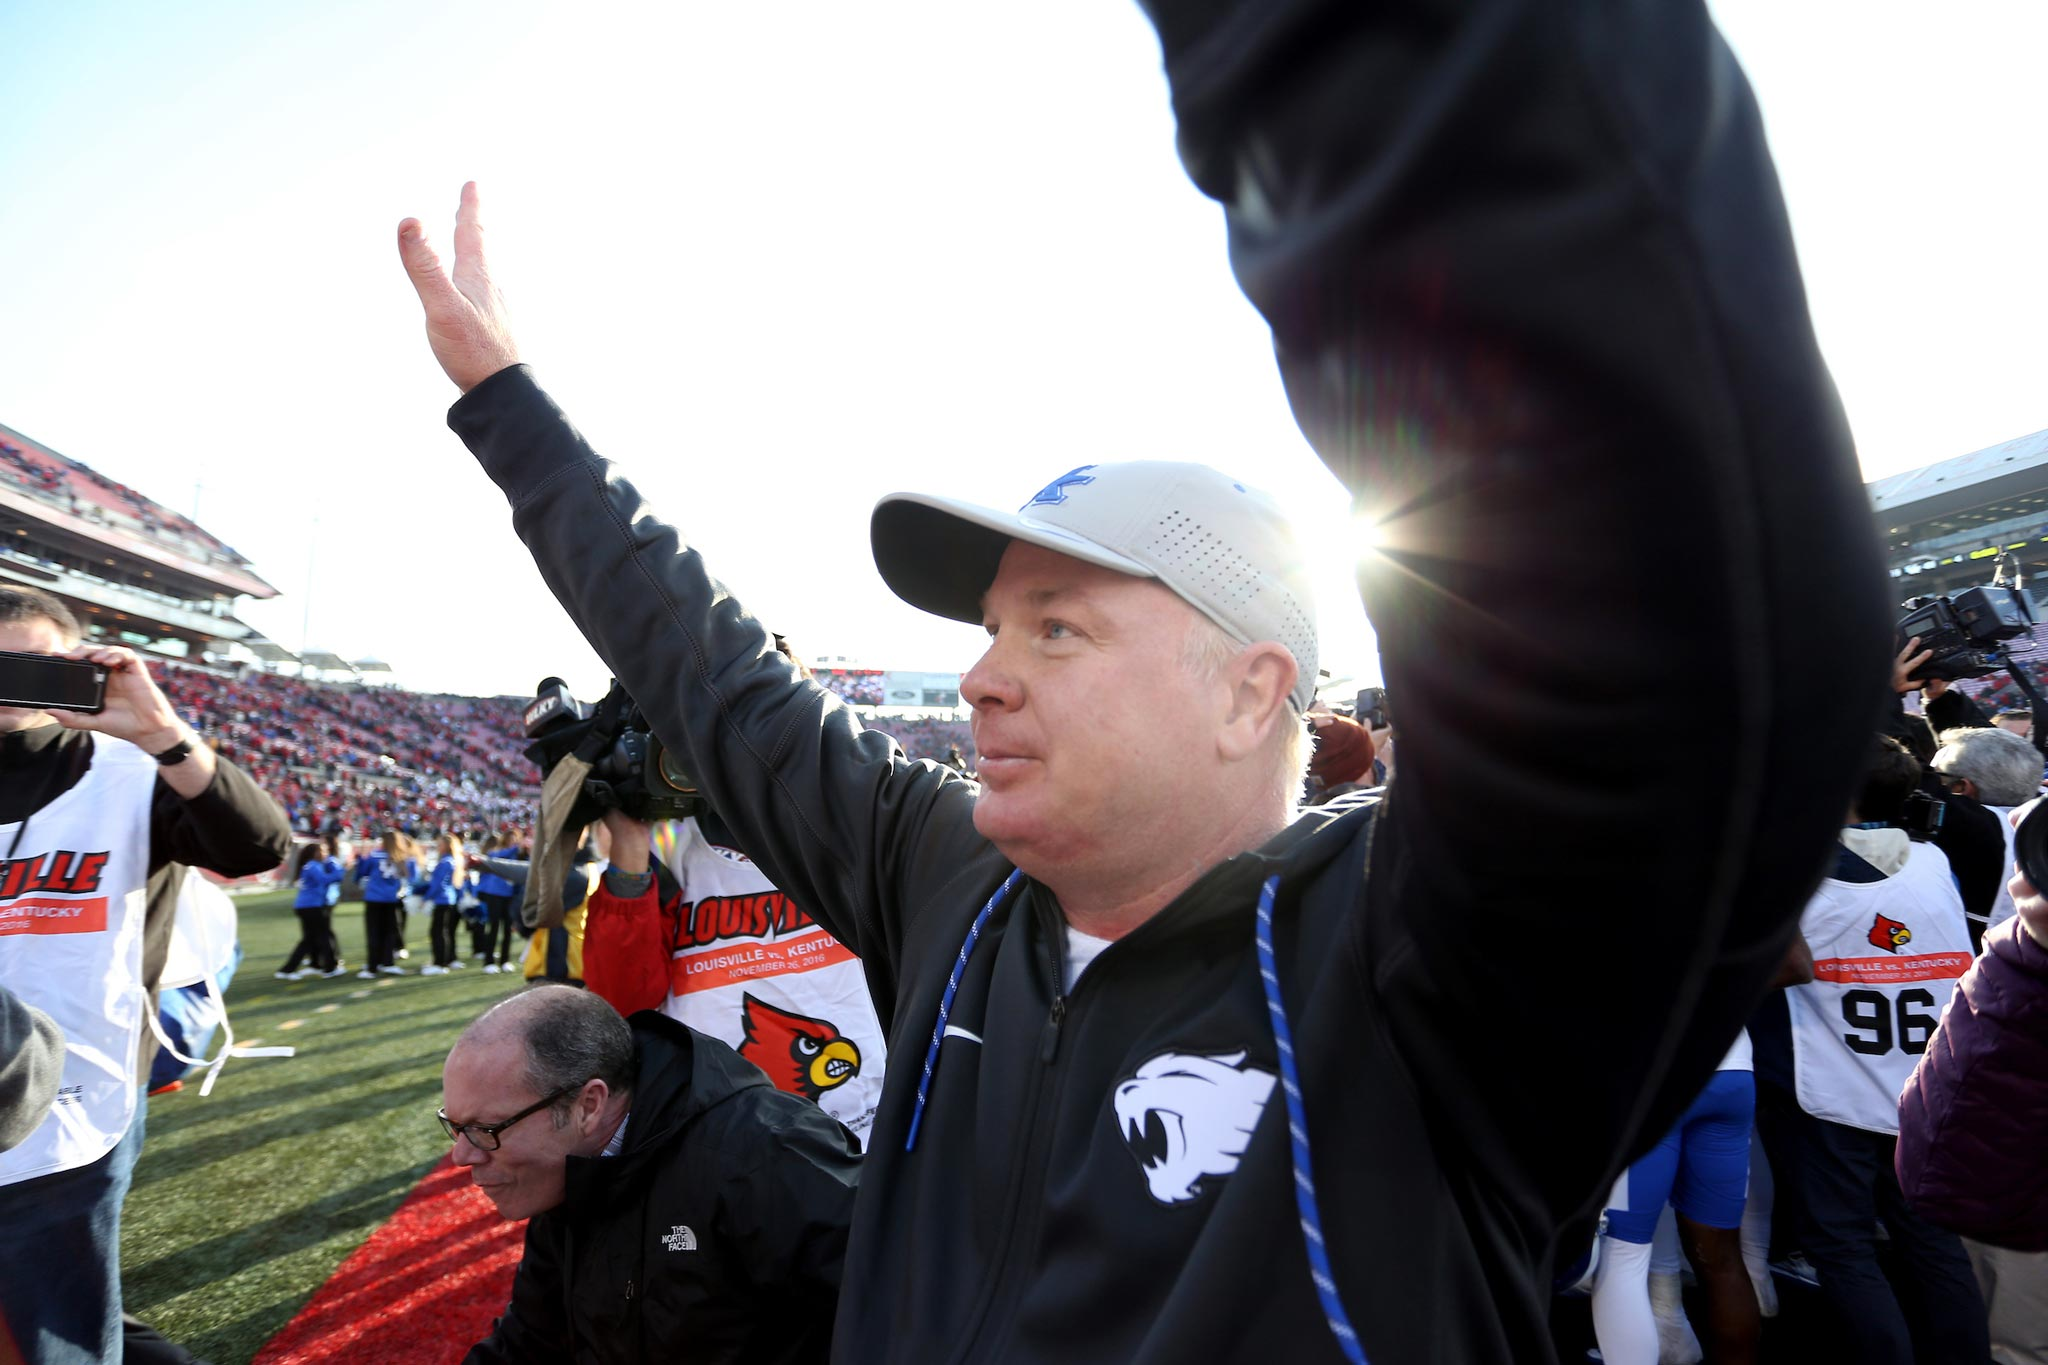 Coach Stoops, standing on the sidelines at a game, looks out onto the field and raises his hands above his head. He is wearing a black Wildcats jacket and a white UK hat.